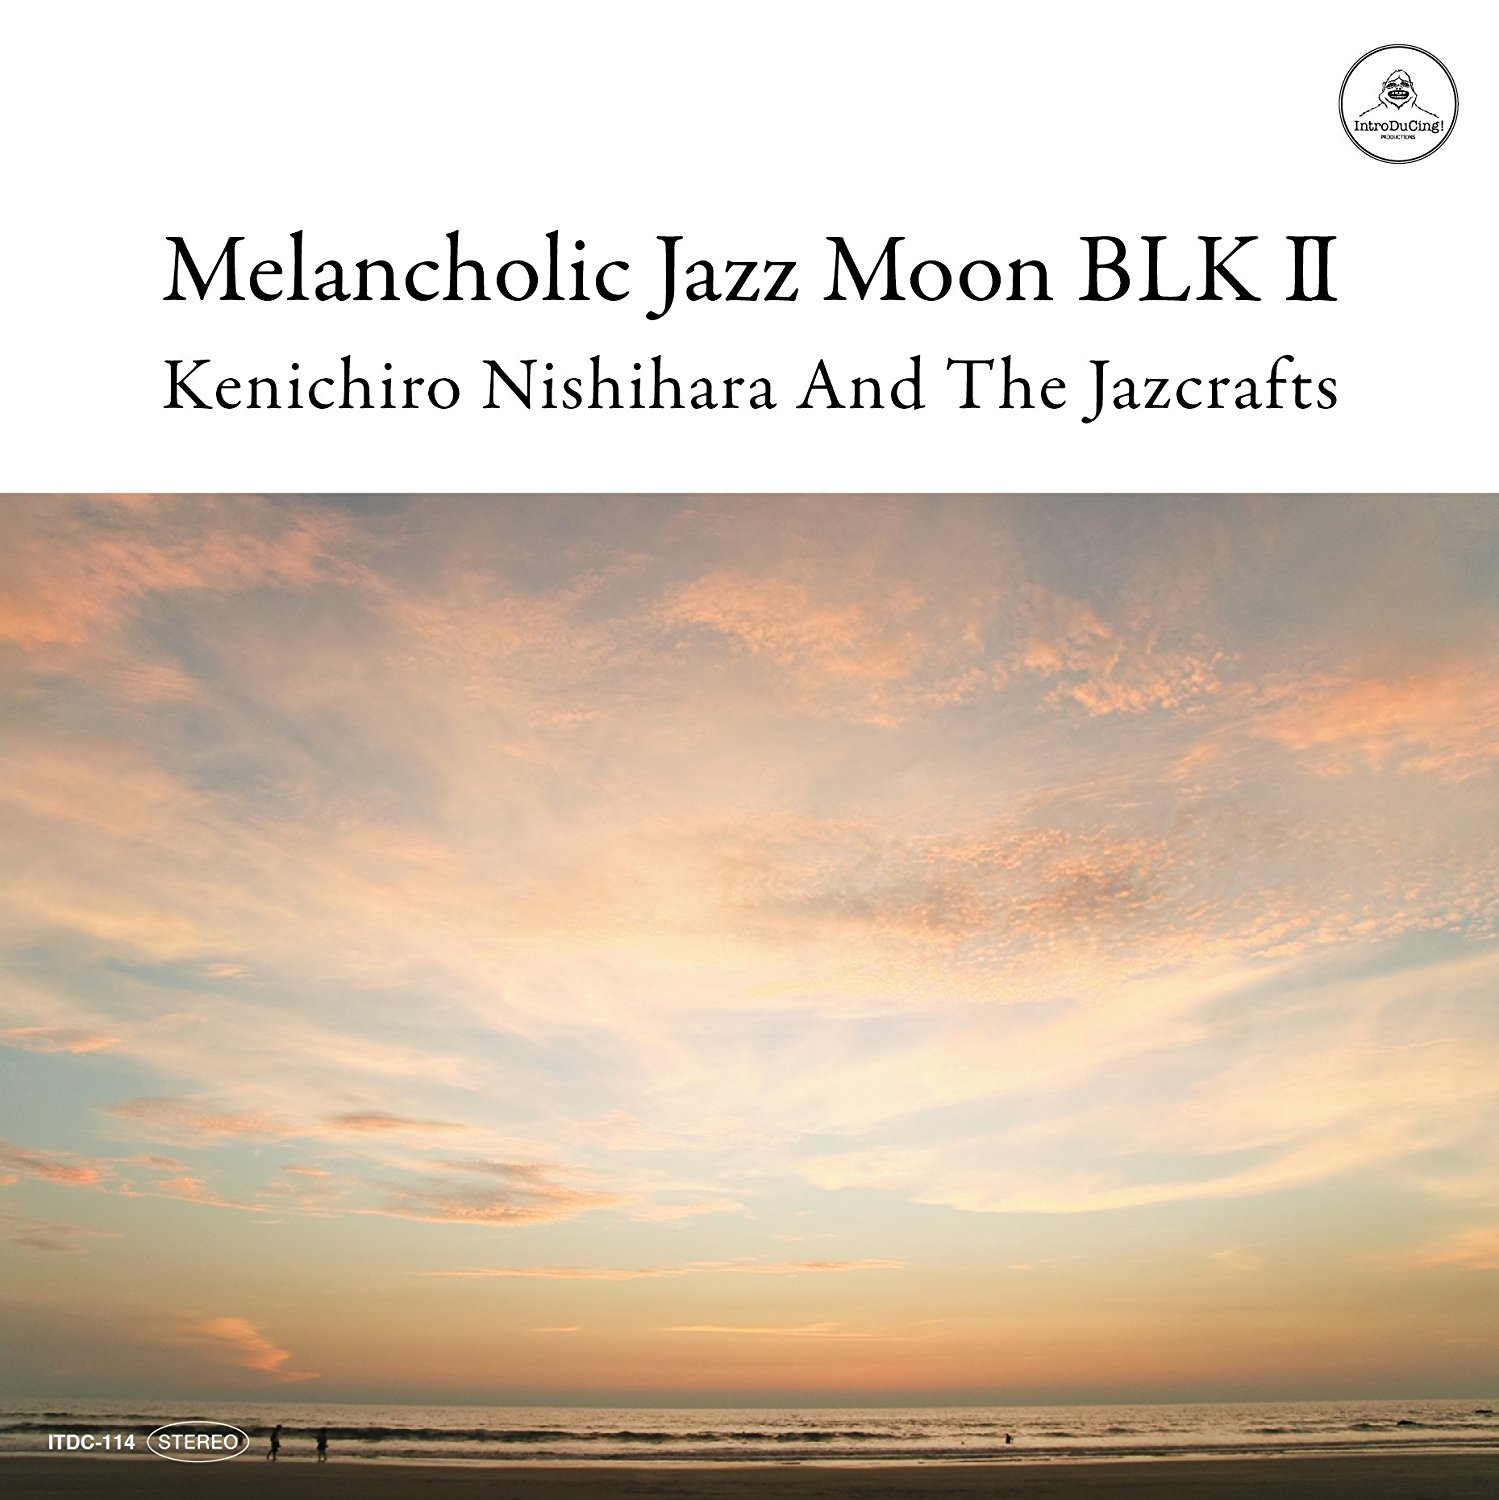 Kenichiro Nishihara And The Jazcrafts「Melancholic Jazz Moon BLK 2」